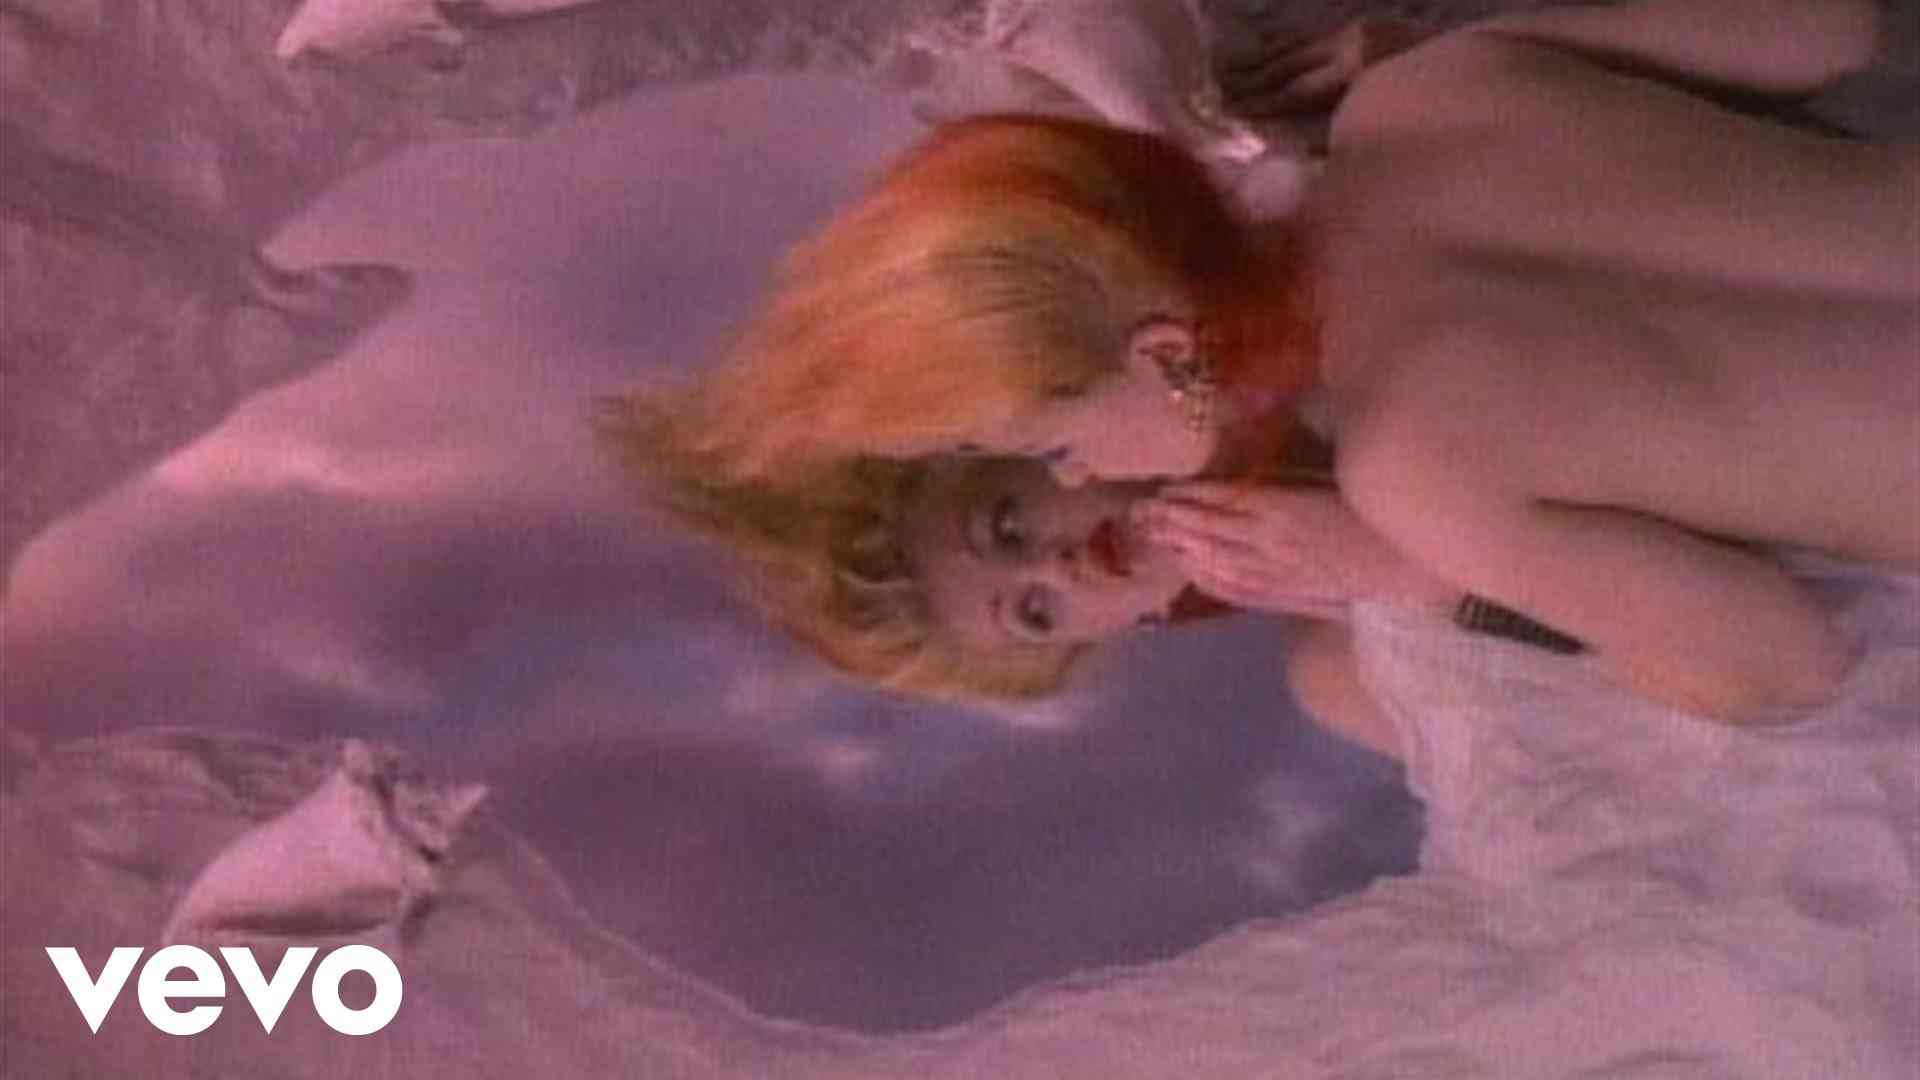 Cyndi Lauper - True Colors (Video) - YouTube